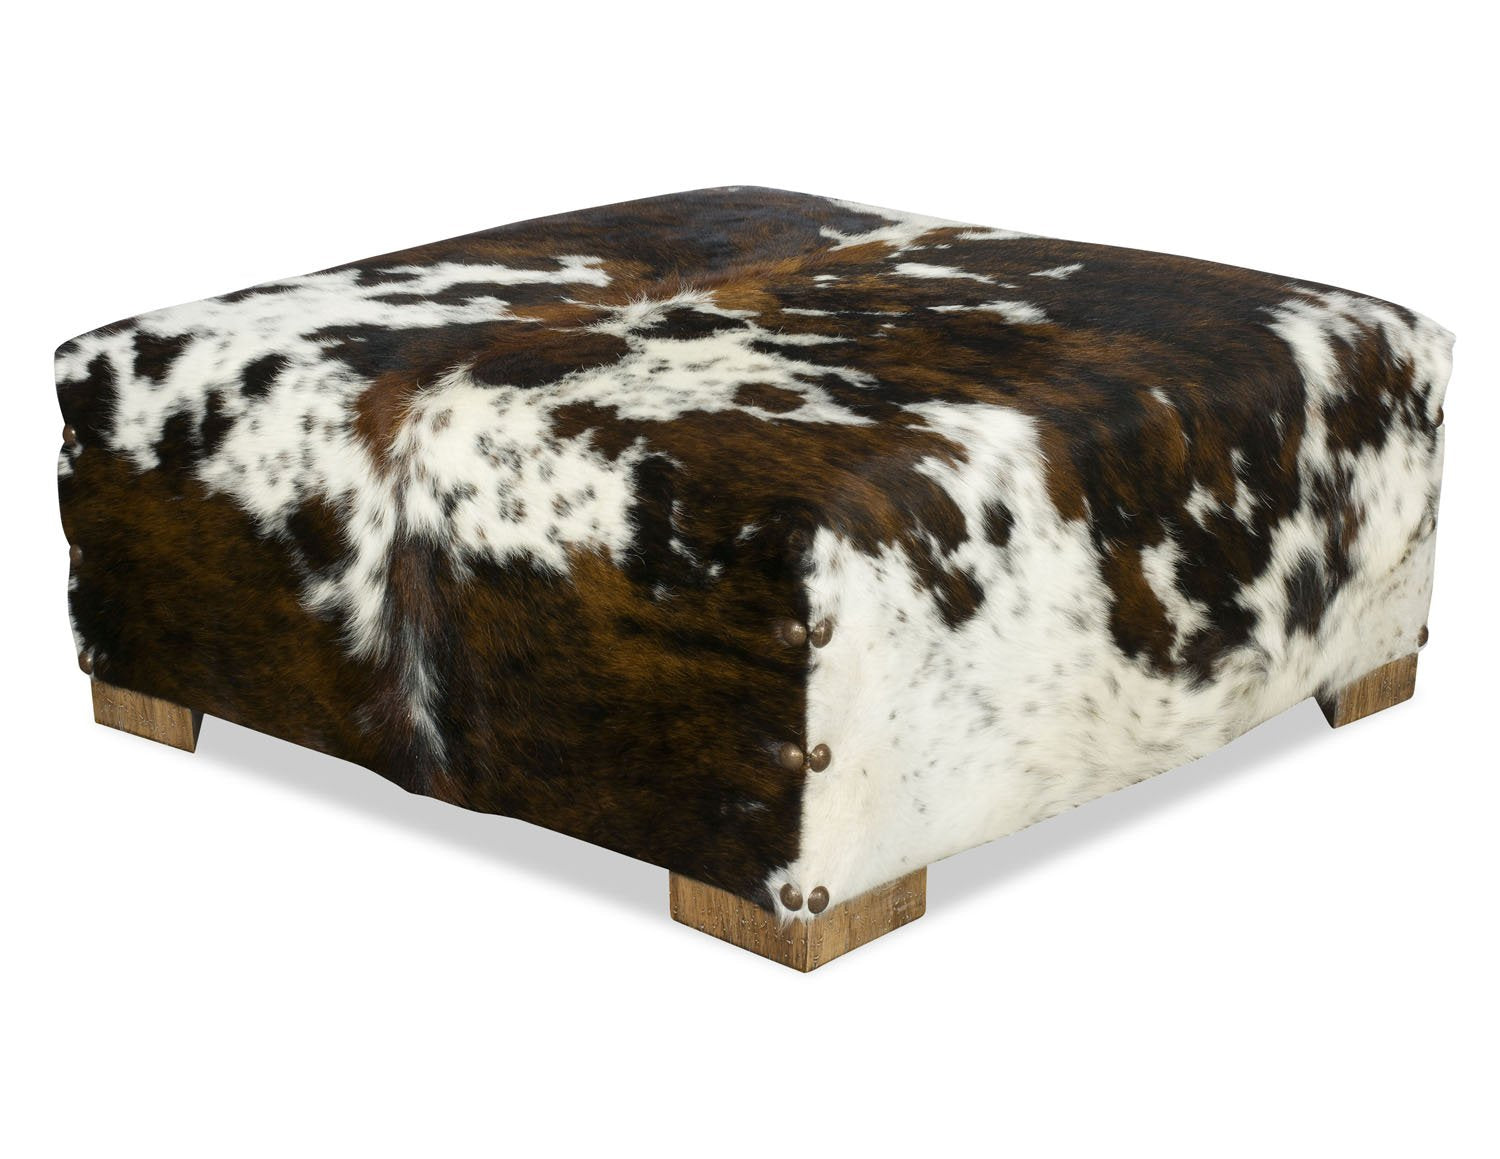 Hobbs Cowhide Ottoman - Tricolor